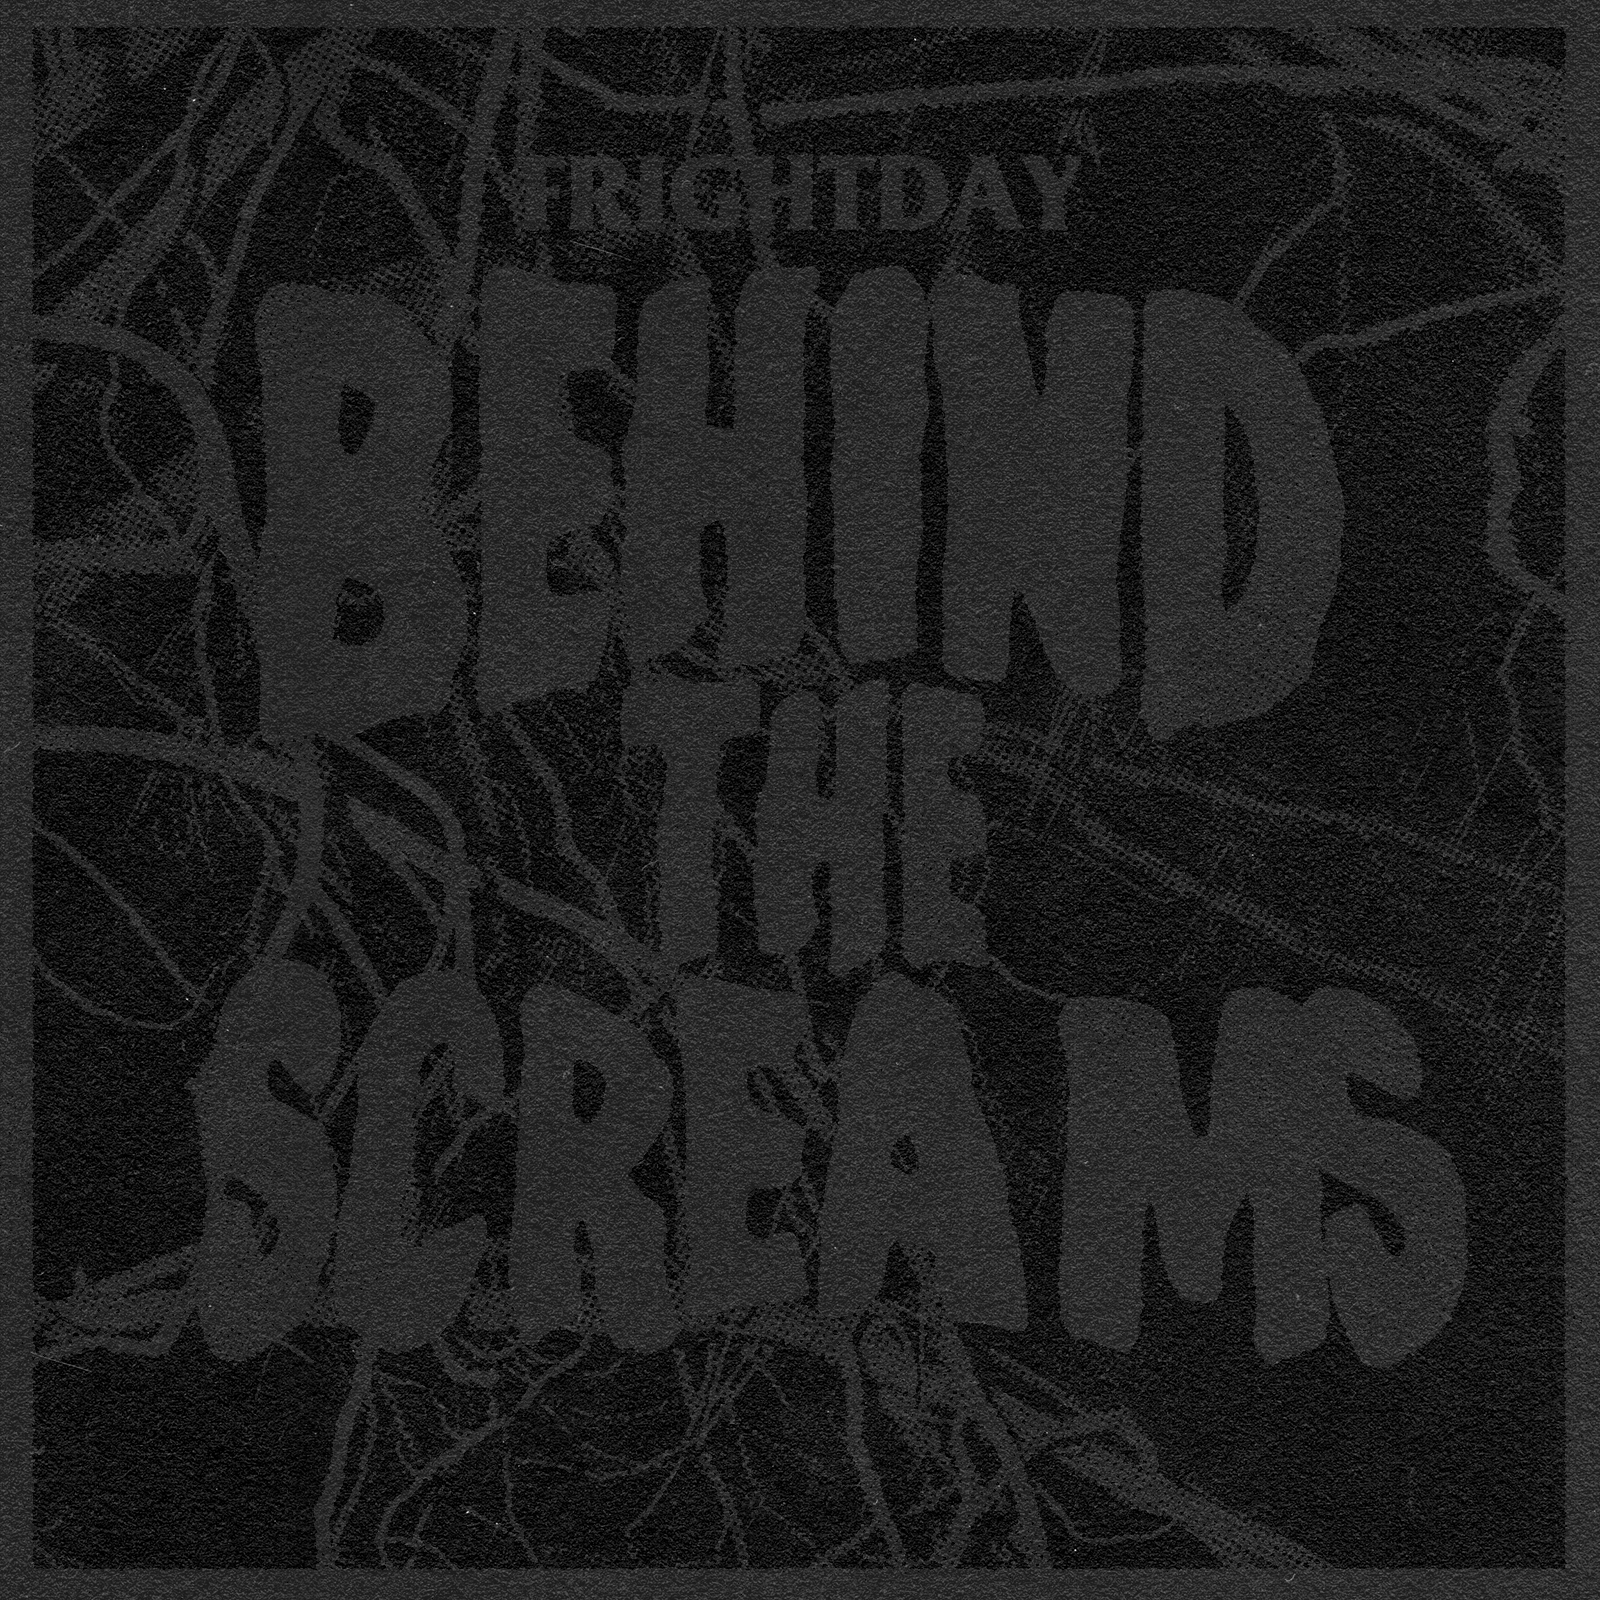 Behind the Screams: Kelly Discovers Cameo™ (Excerpt)